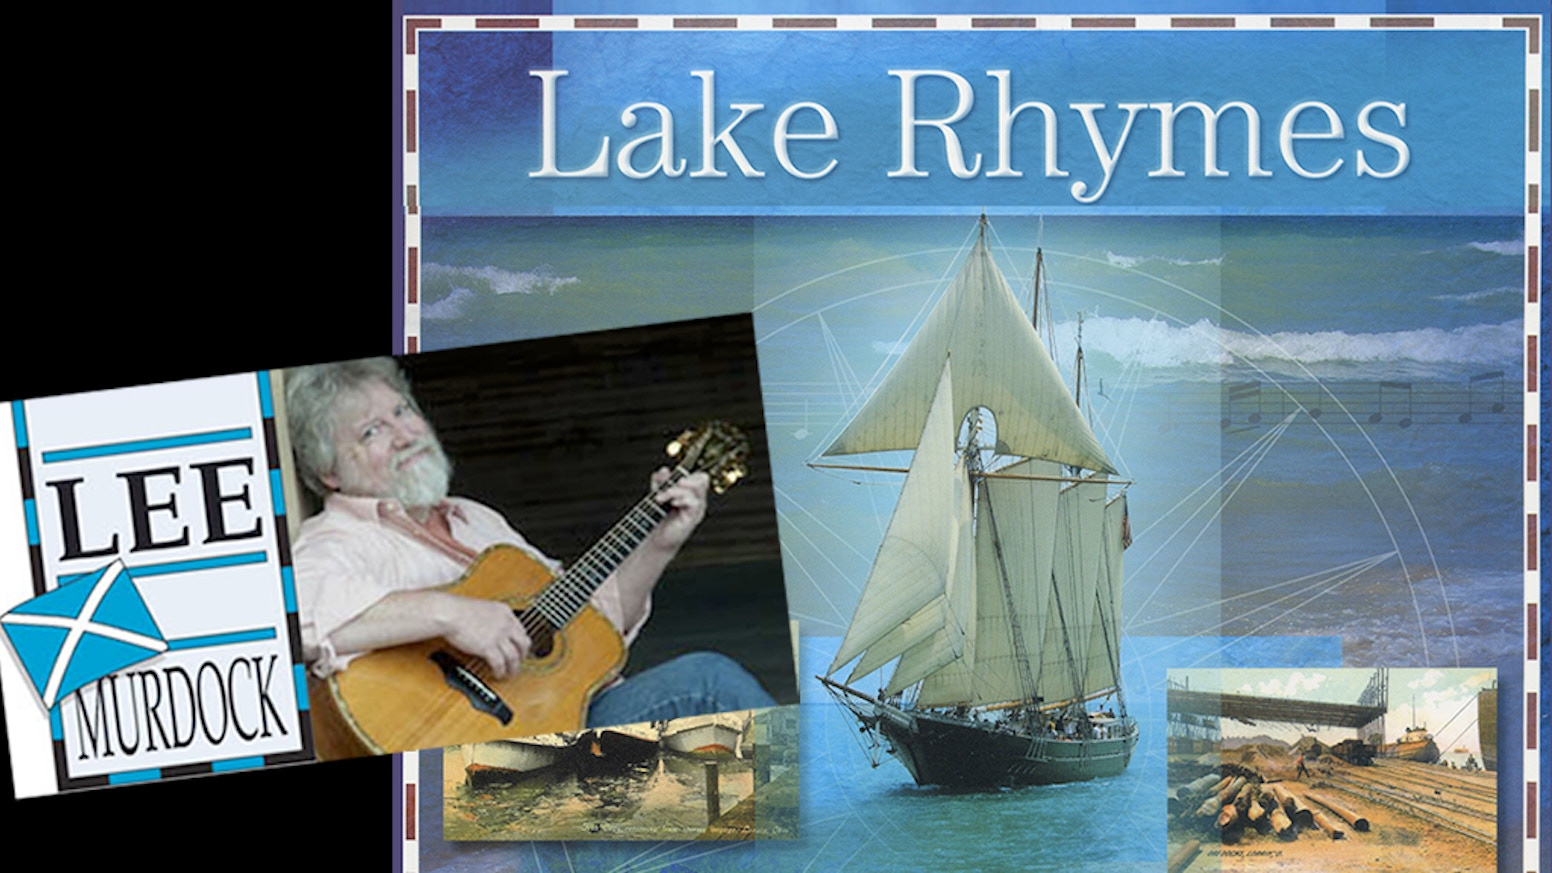 Limited Edition Coffee Table Hardcover book & 18-song CD celebrates Great Lakes waters & mariners in historic photos maps & Song